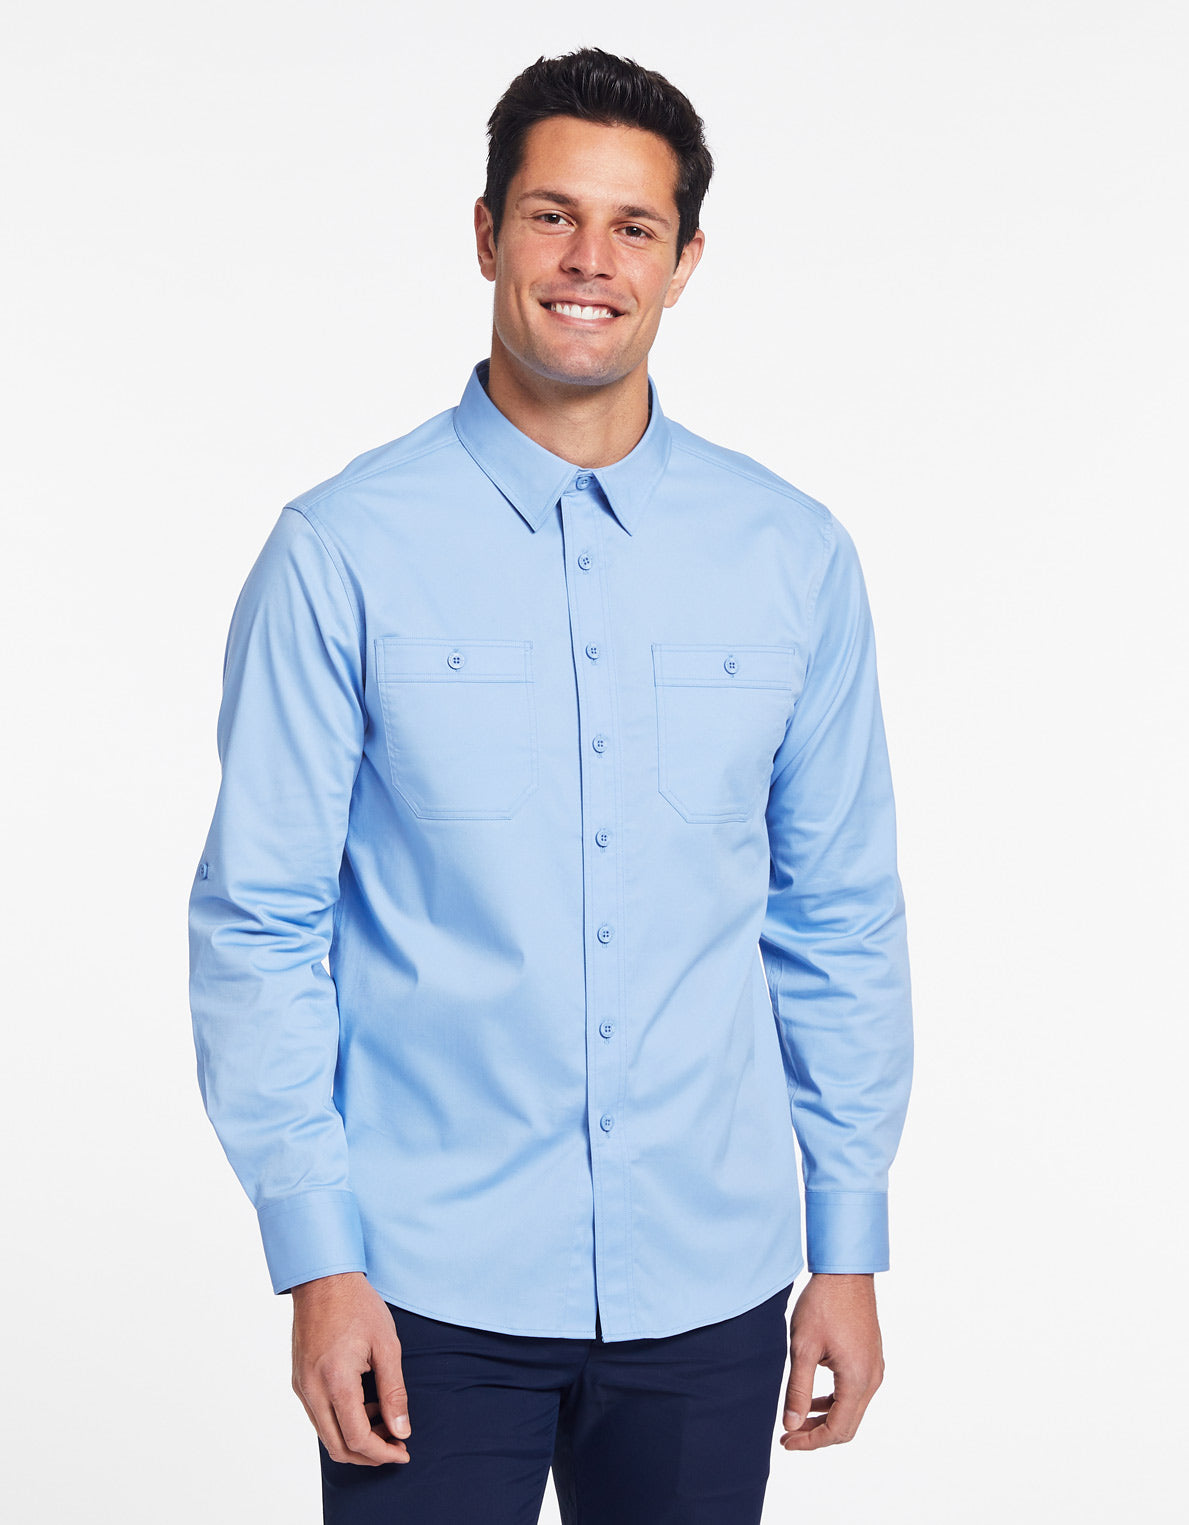 Solbari Sun Protection UPF 50+ Outback Shirt in Blue Technicool Collection